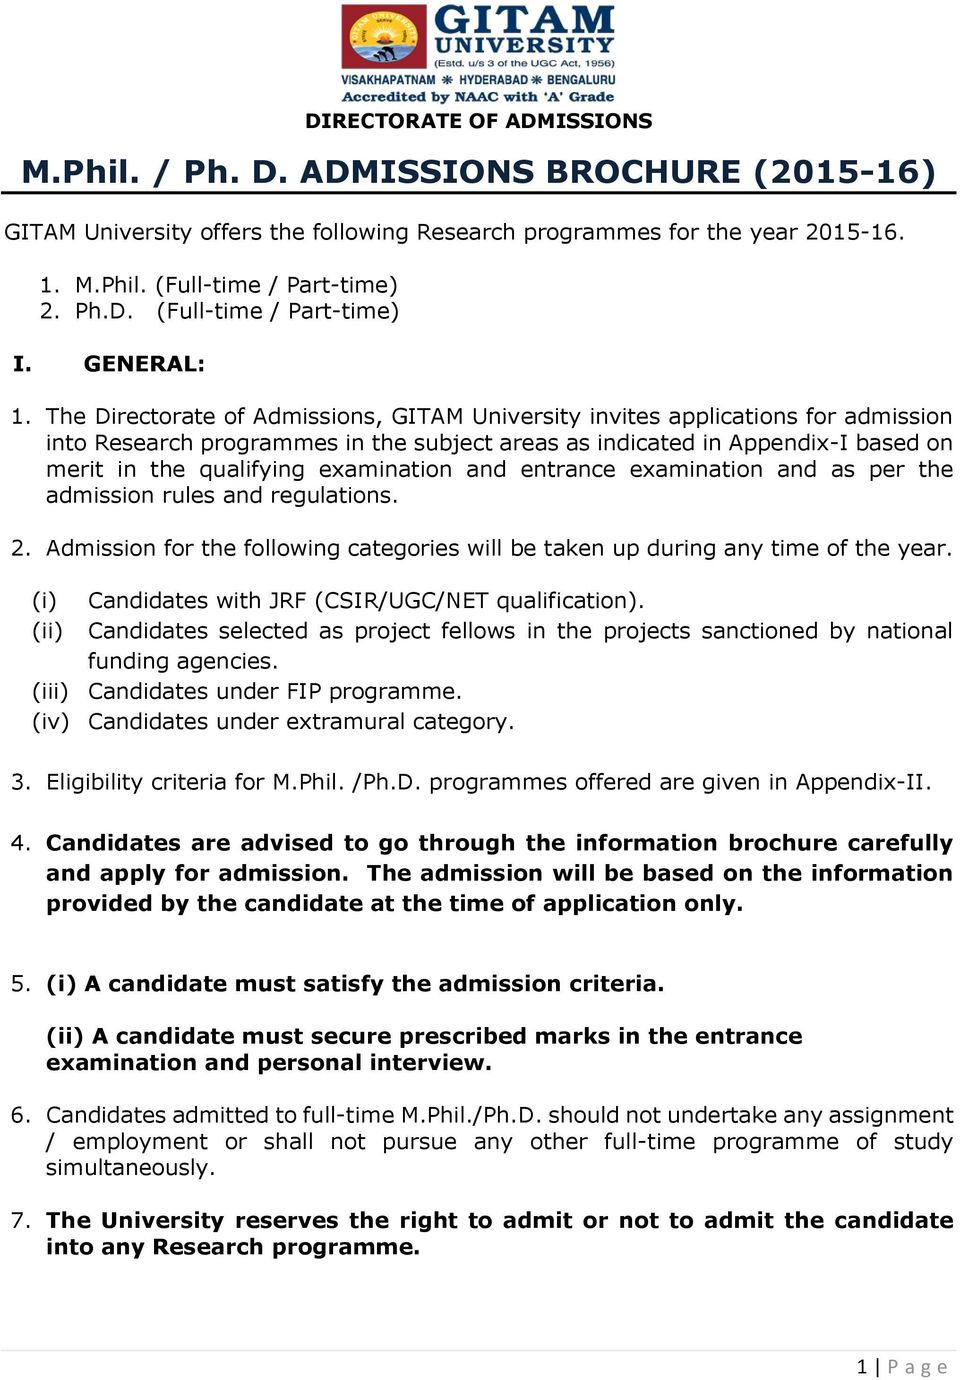 The Directorate of Admissions, GITAM University invites applications for admission into Research programmes in the subject areas as indicated in Appendix-I based on merit in the qualifying